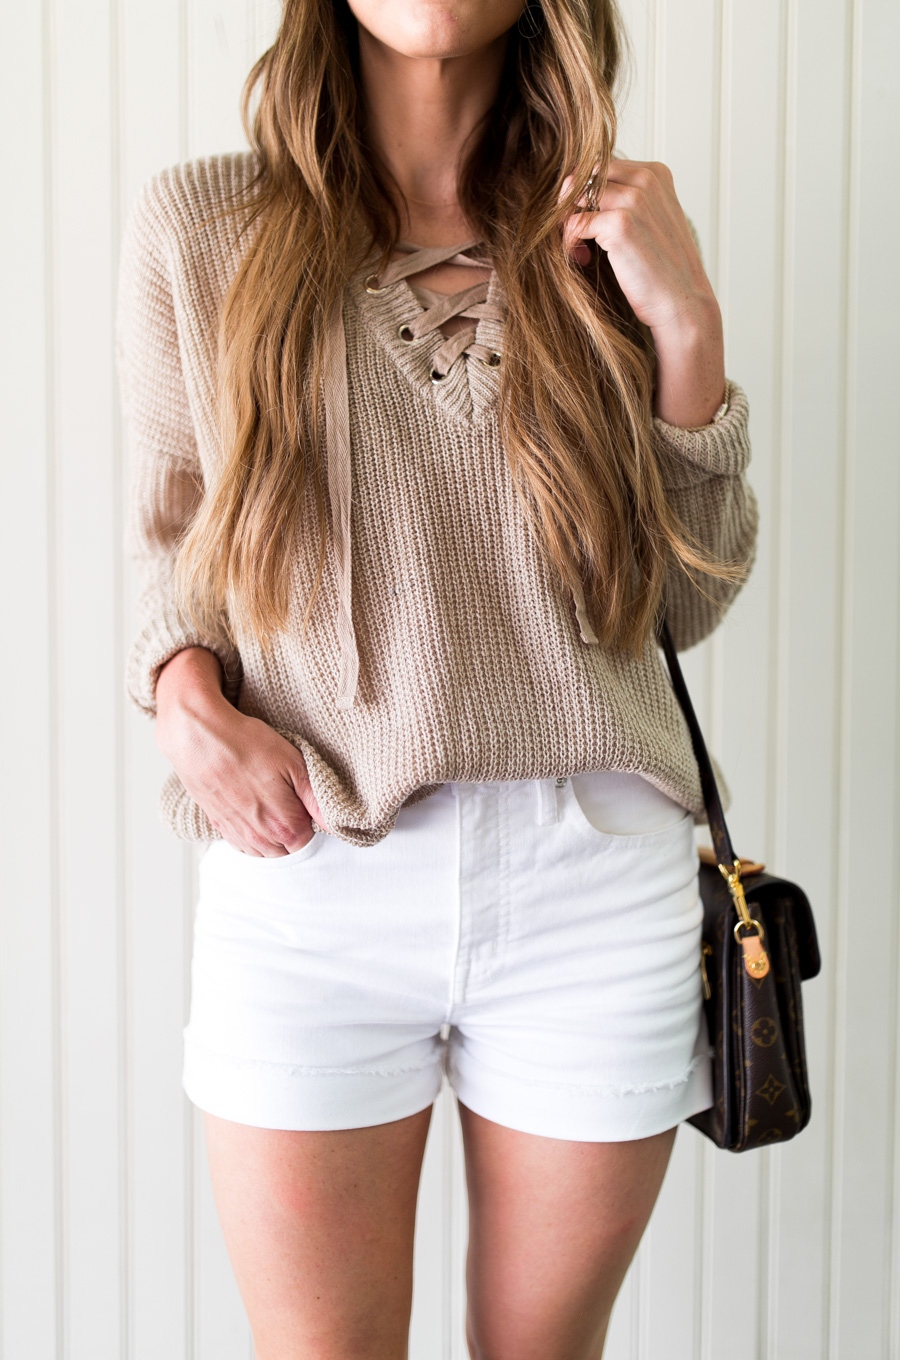 Daryl-Ann Denner wearing white shorts and lace-up sweater